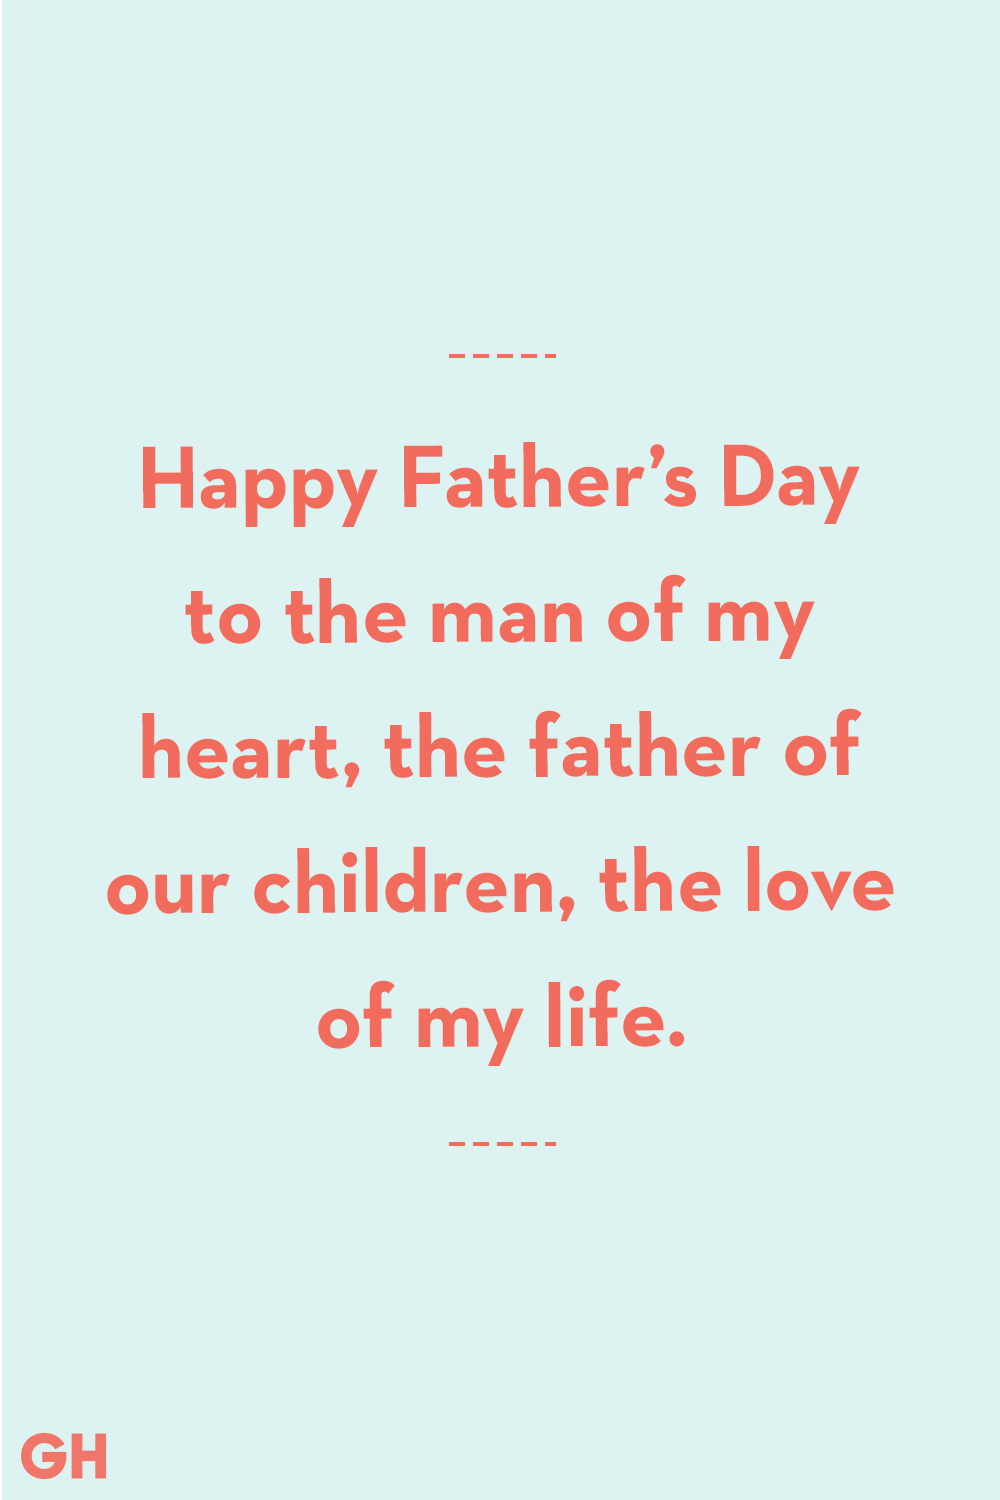 photograph regarding The Father's Love Letter Printable called 20 Fathers Working day Offers Towards Spouse - Offers In opposition to Spouse toward